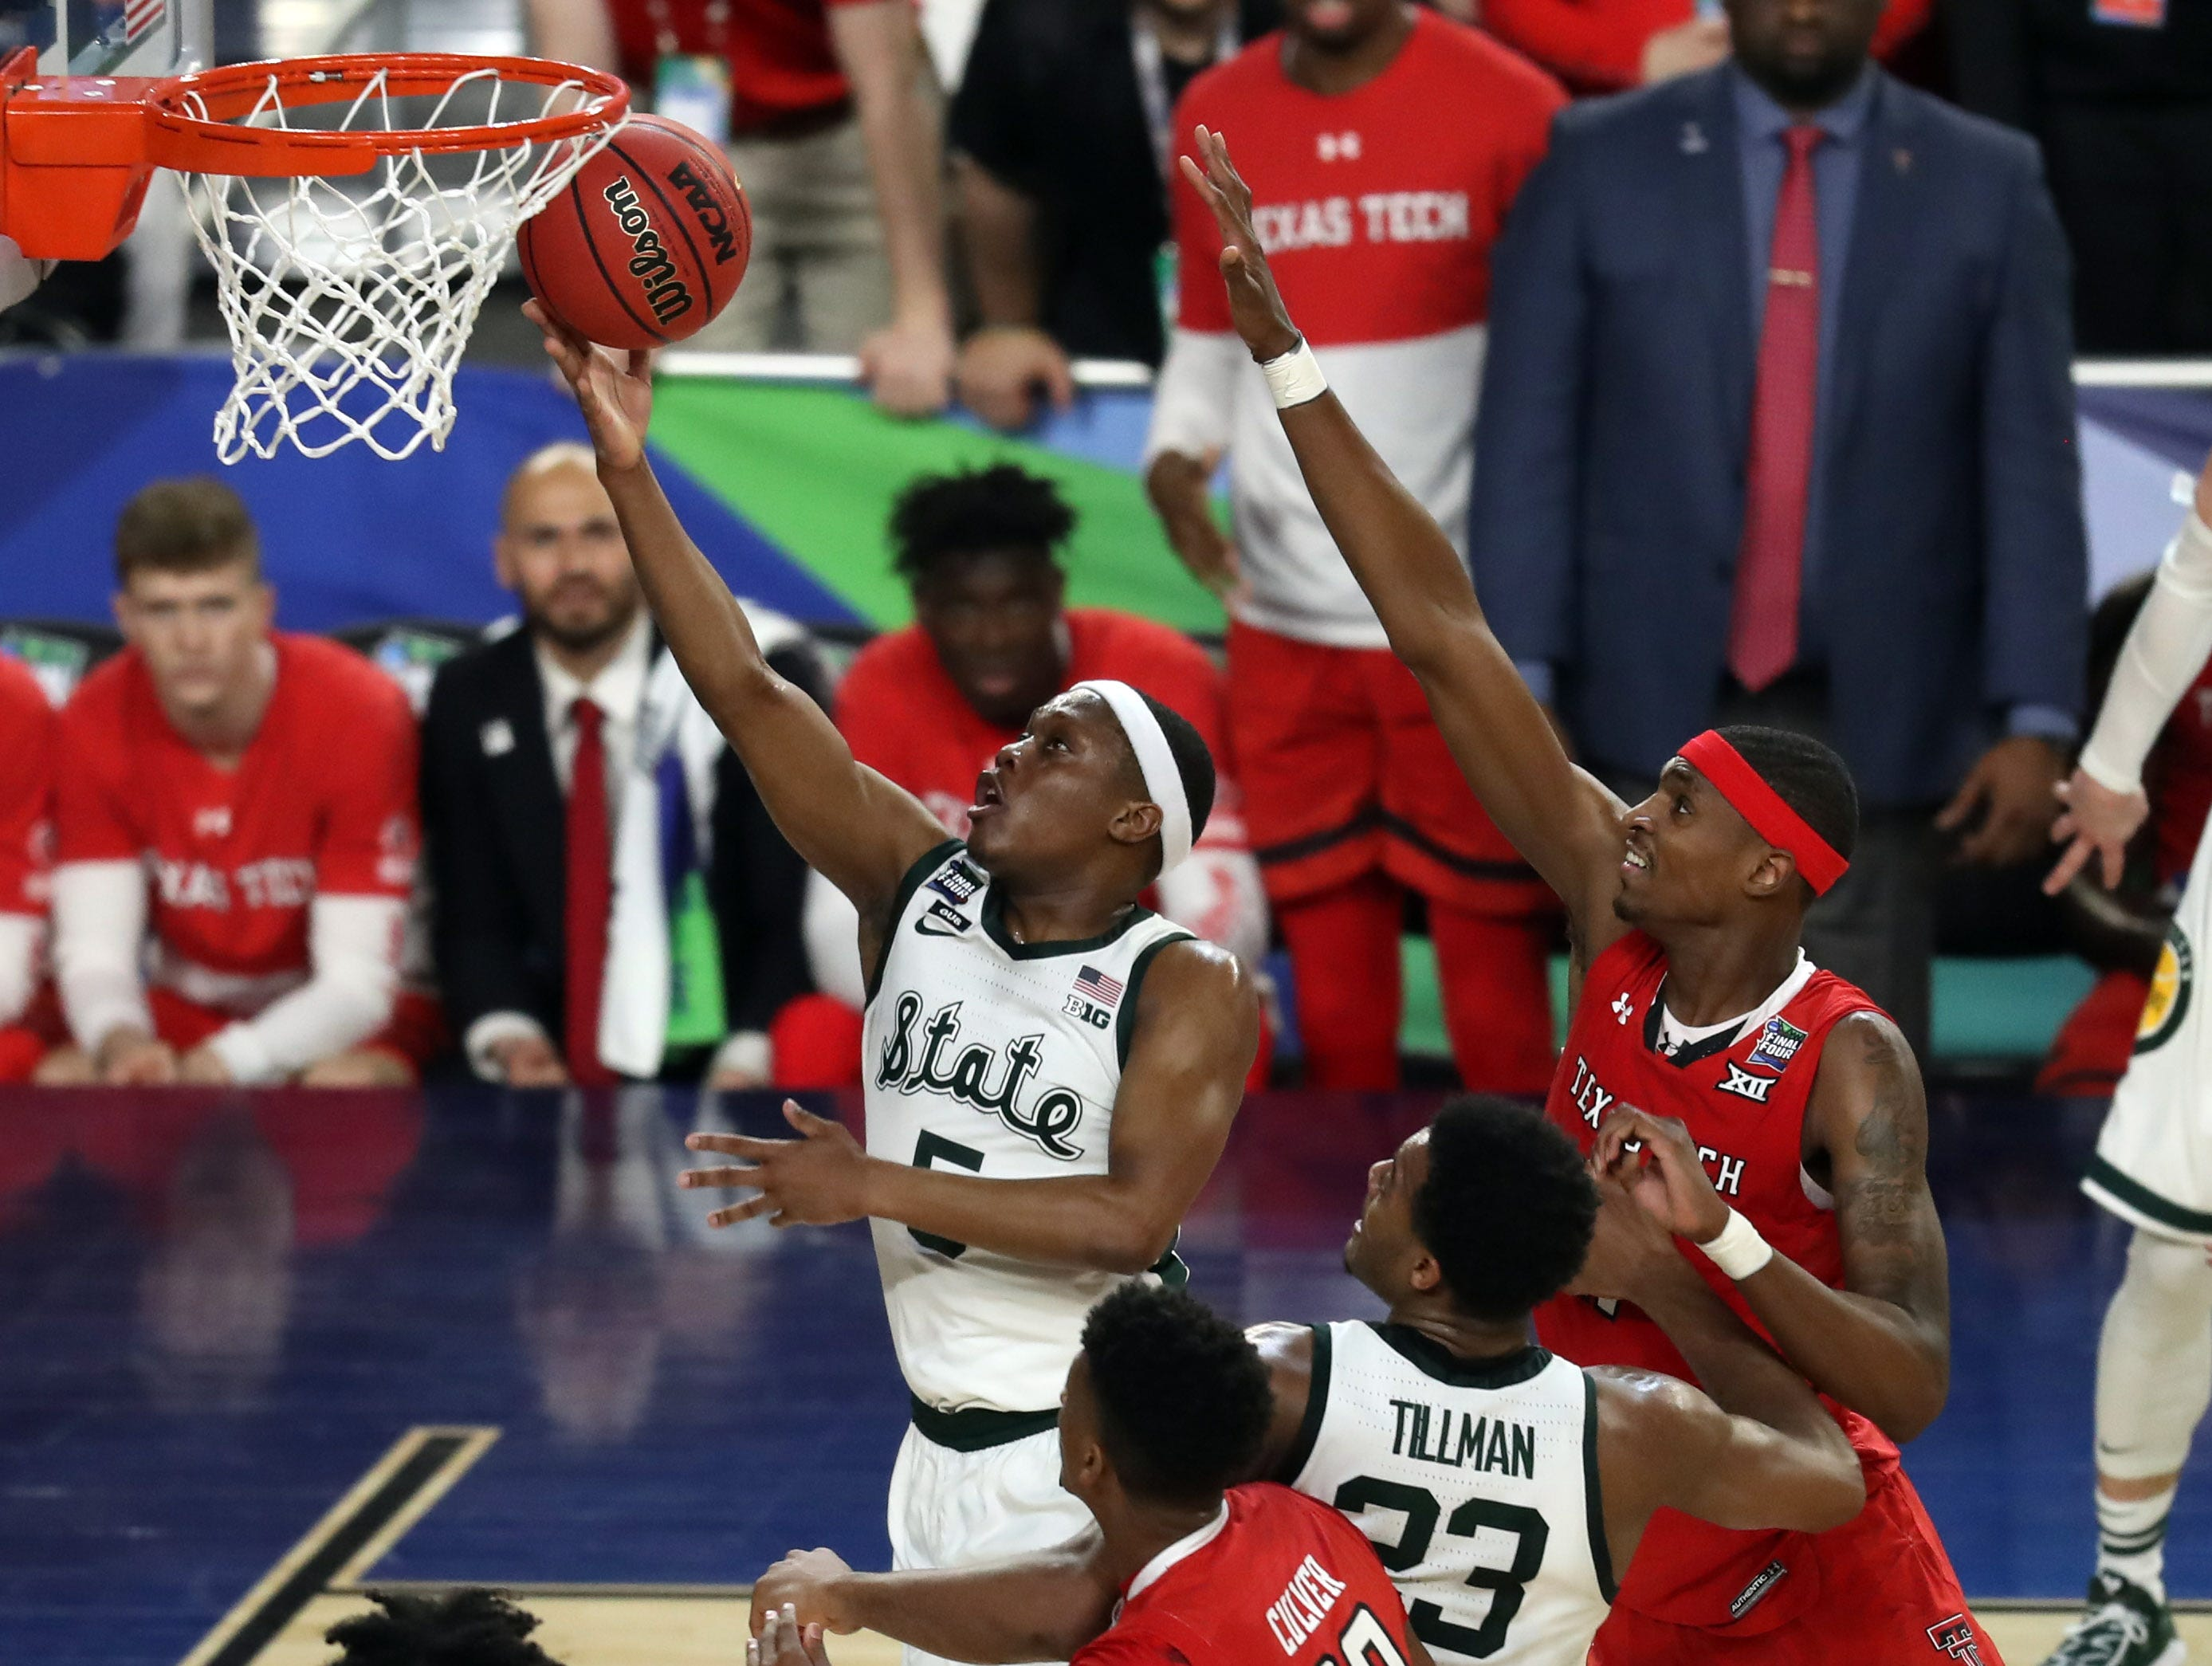 Apr 6, 2019; Minneapolis, MN, USA; Michigan State Spartans guard Cassius Winston (5) drives to the basket during the first half against the Texas Tech Red Raiders in the semifinals of the 2019 men's Final Four at US Bank Stadium. Mandatory Credit: Brace Hemmelgarn-USA TODAY Sports